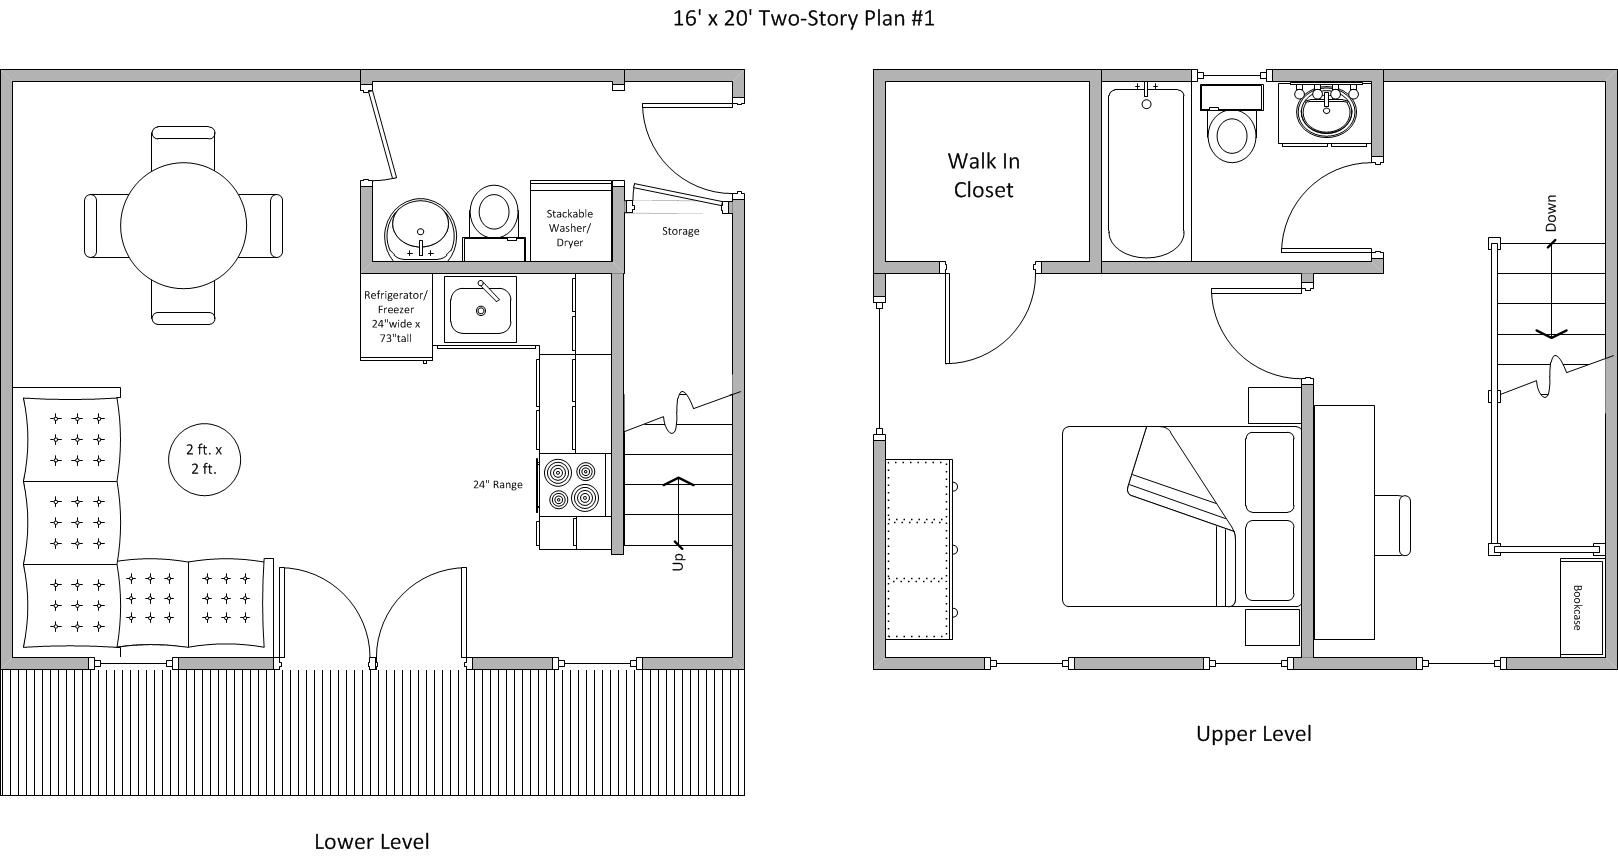 Use The Plan On The Right If Having Common Area With